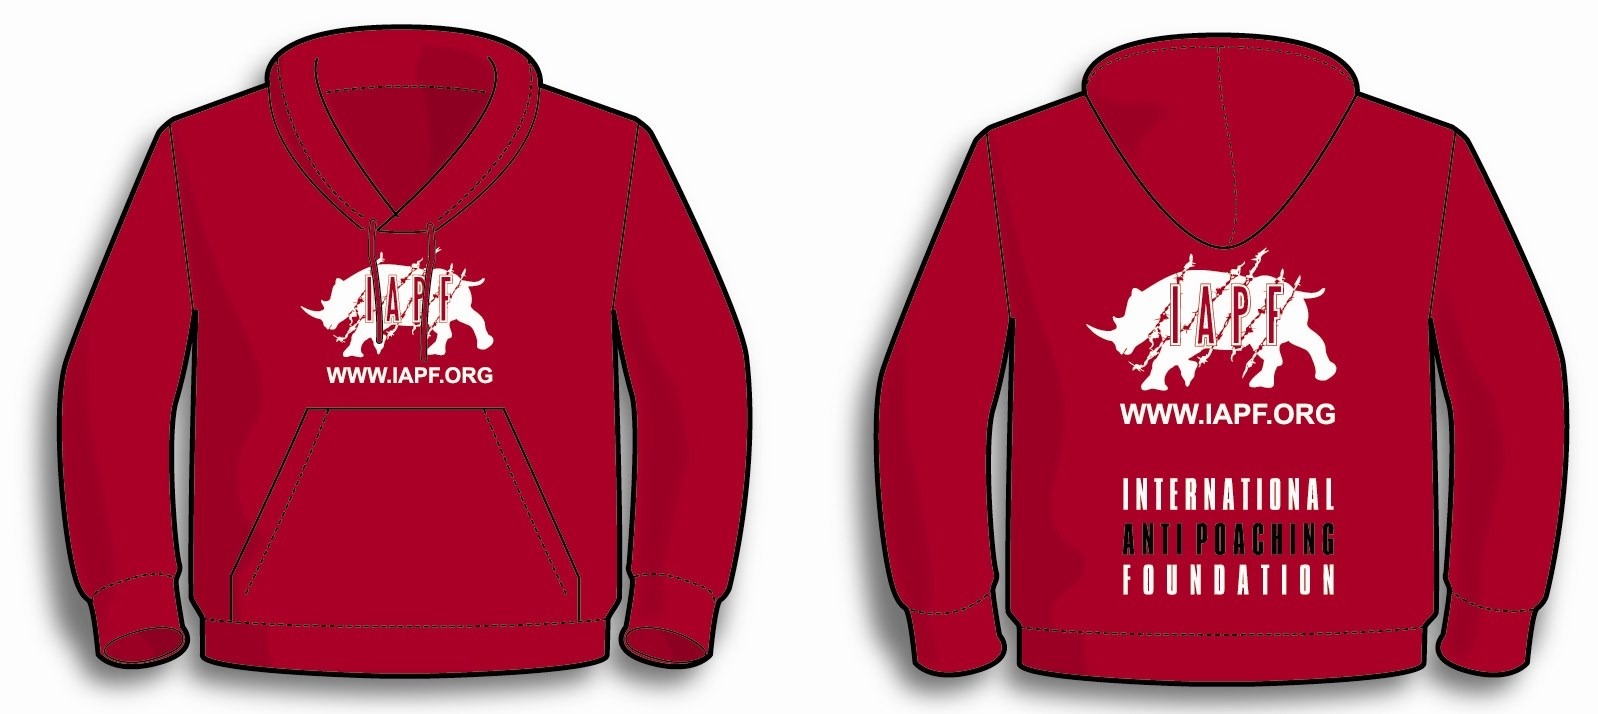 International Anti-Poaching Foundation - Red Kid's Hoodie With IAPF Logo On Front Centre And On Full Back